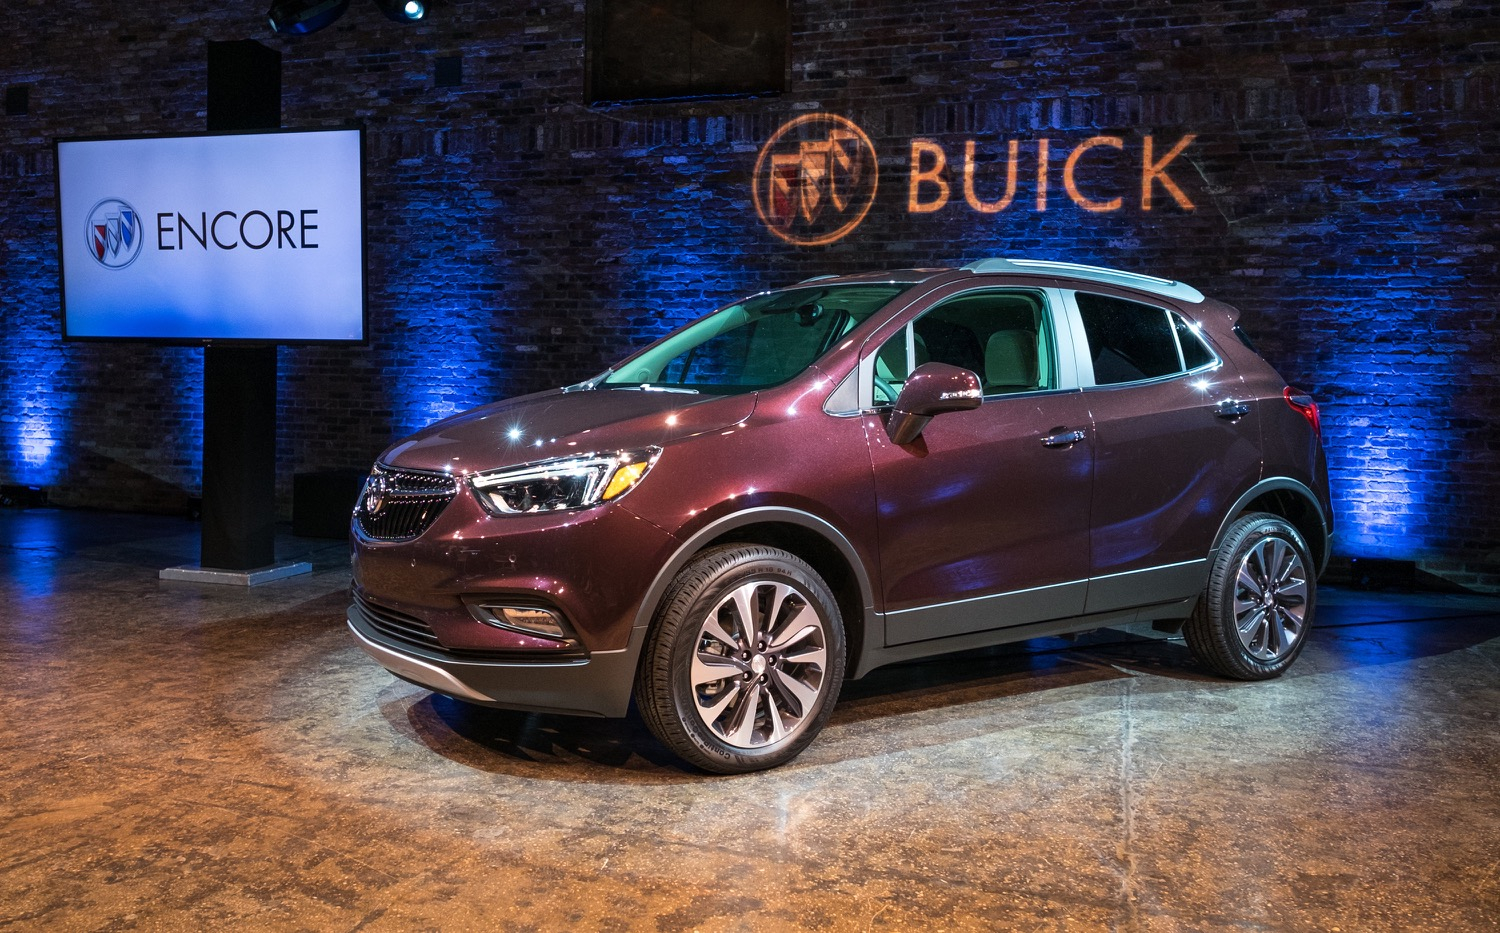 2019 Buick Encore Exterior Colors | Gm Authority New 2022 Buick Encore Release Date, Specifications, Exterior Colors